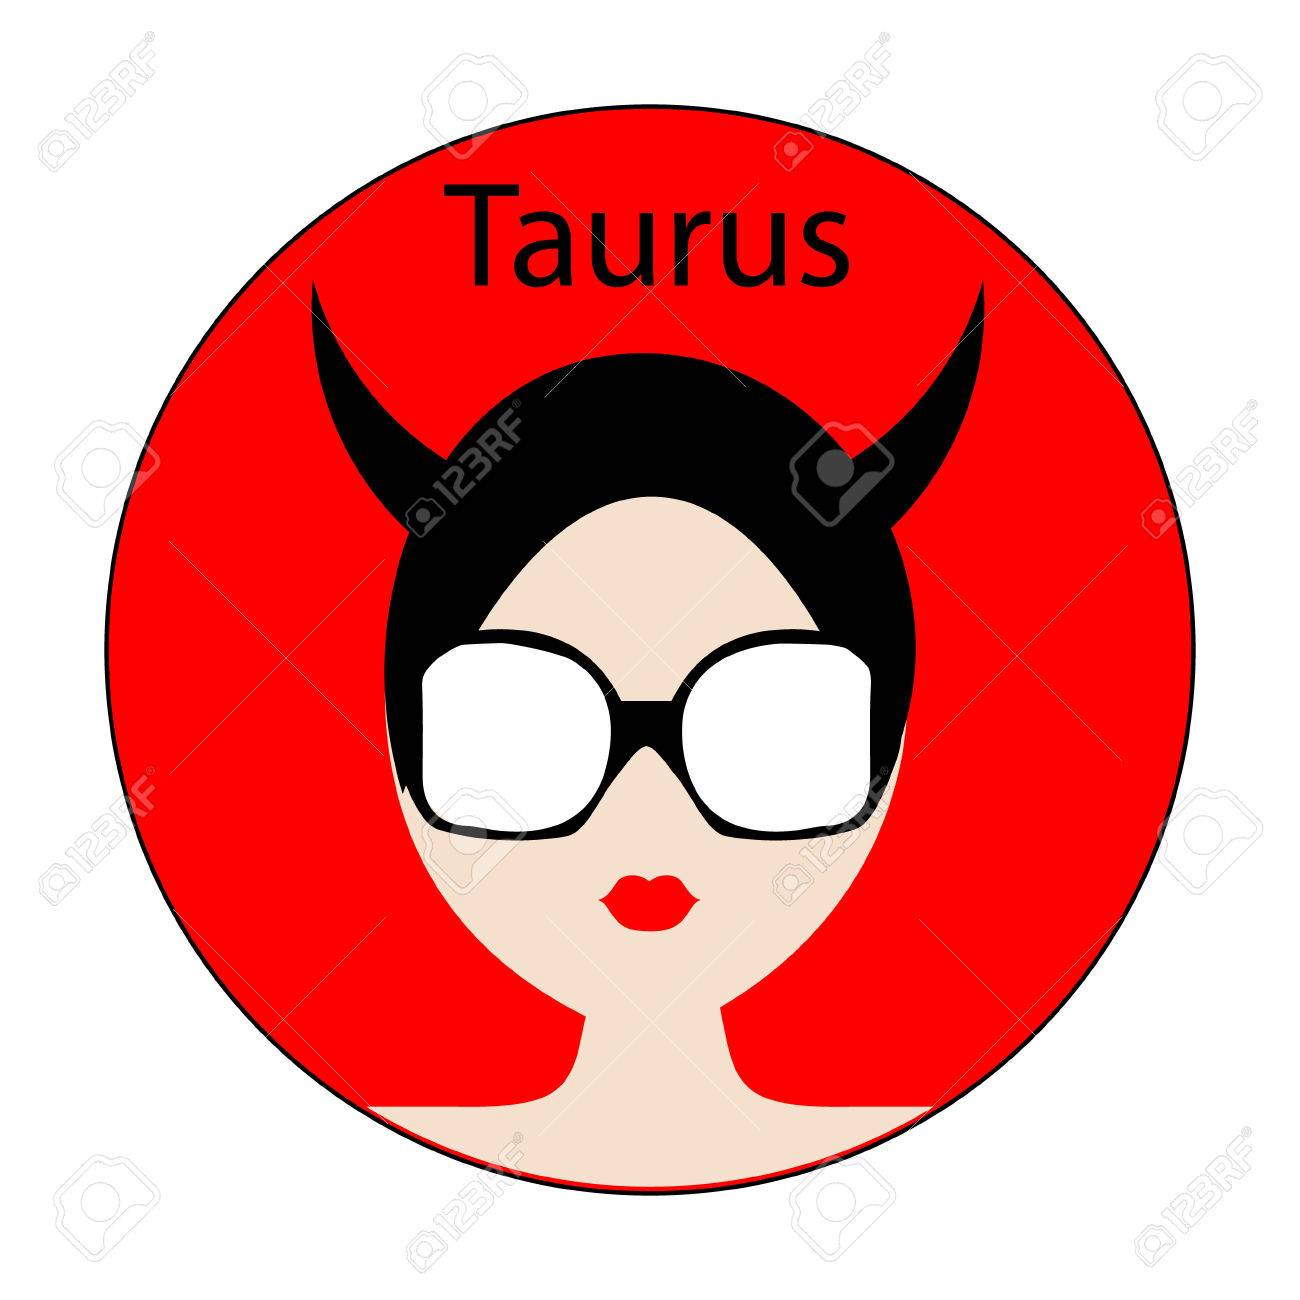 Taurus Zodiac Sign Icon With Fashionable Woman Face With Trendy